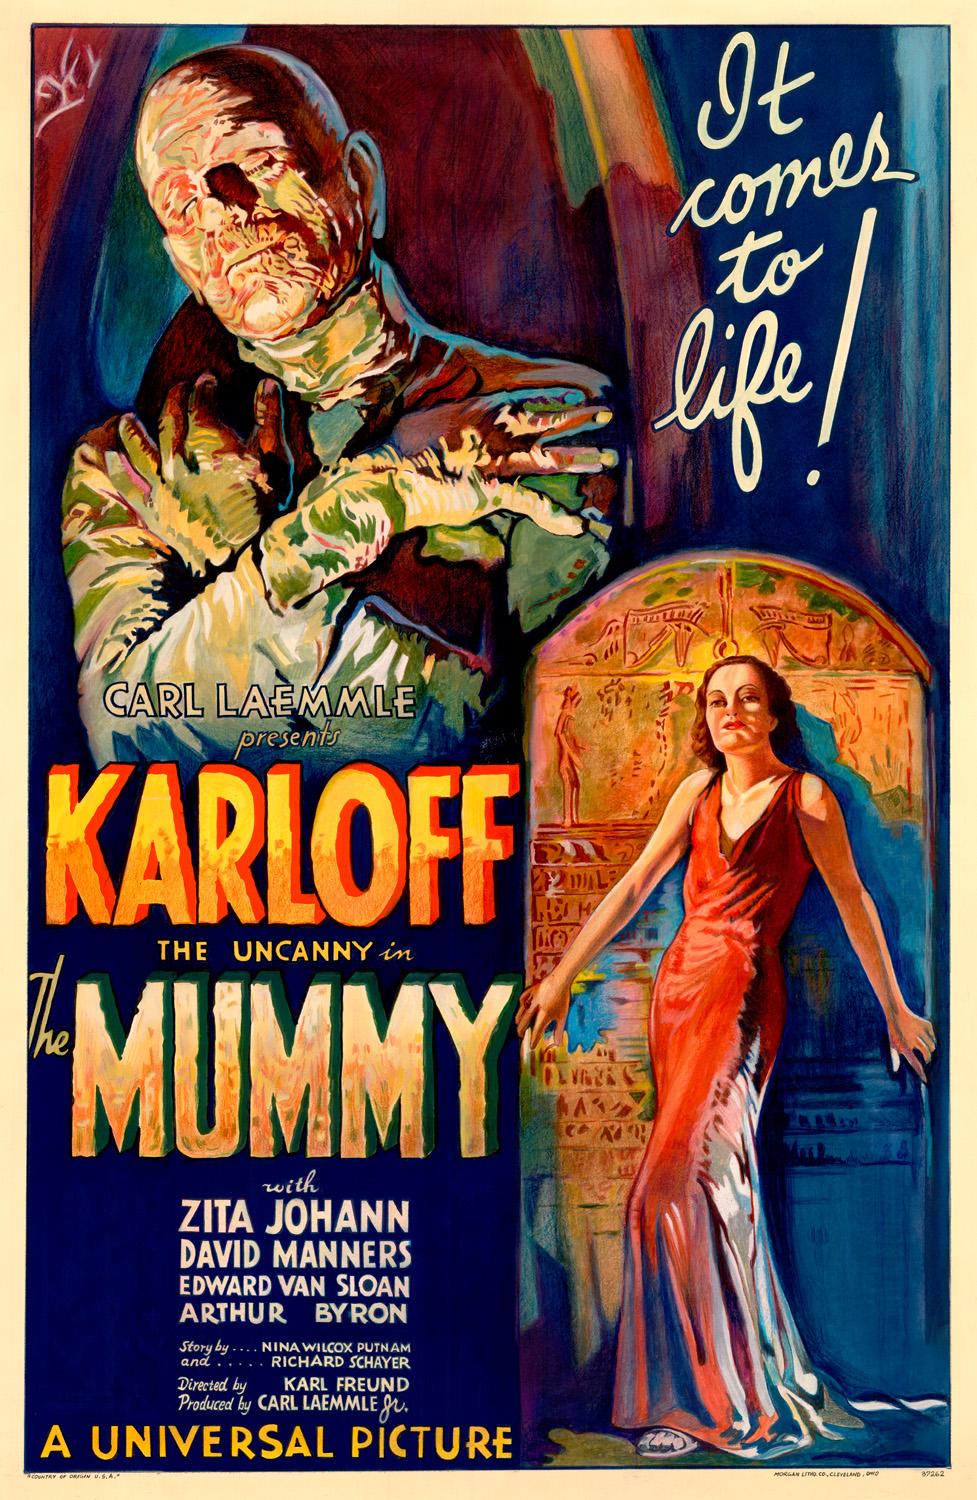 """The Mummy 1932 Film Poster"" – Universal Pictures, attributed to Karoly Grosz. This movie poster is more like half warm and half cool, but notice in particular the woman in the lower right who is bathed in warm light and stands against a cool shadow. (Licensed under Public Domain via Wikimedia Commons)"